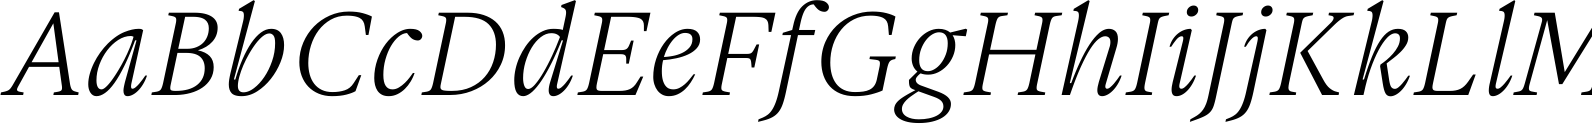 Gauthier Next FY Italic Font